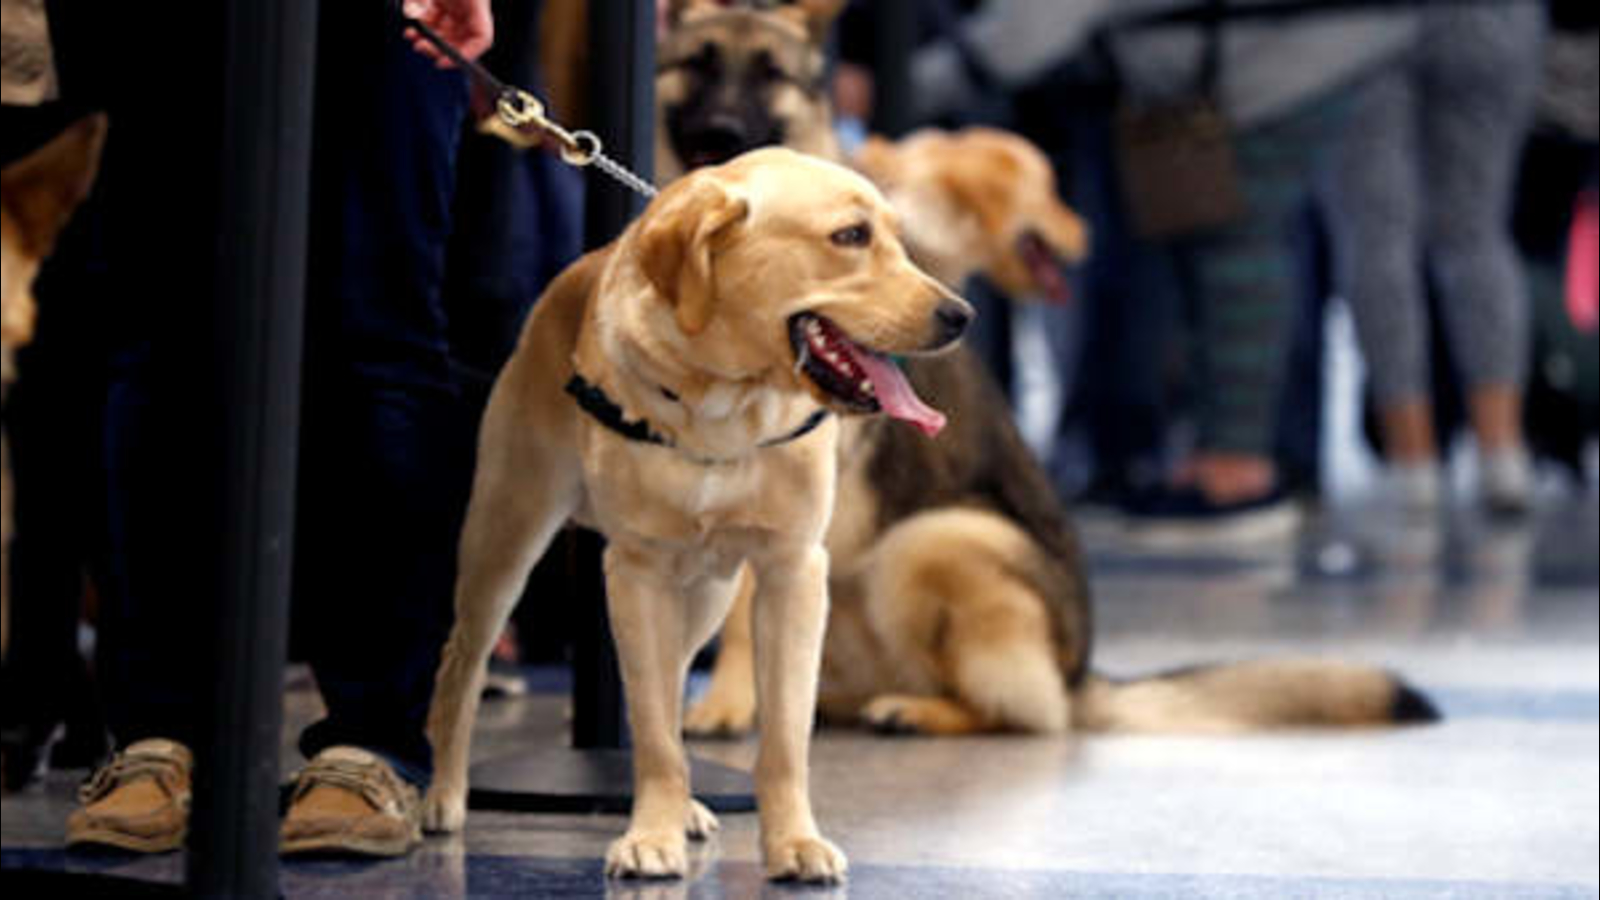 Newark Airport Goes To The Dogs Hosting Guide Dog